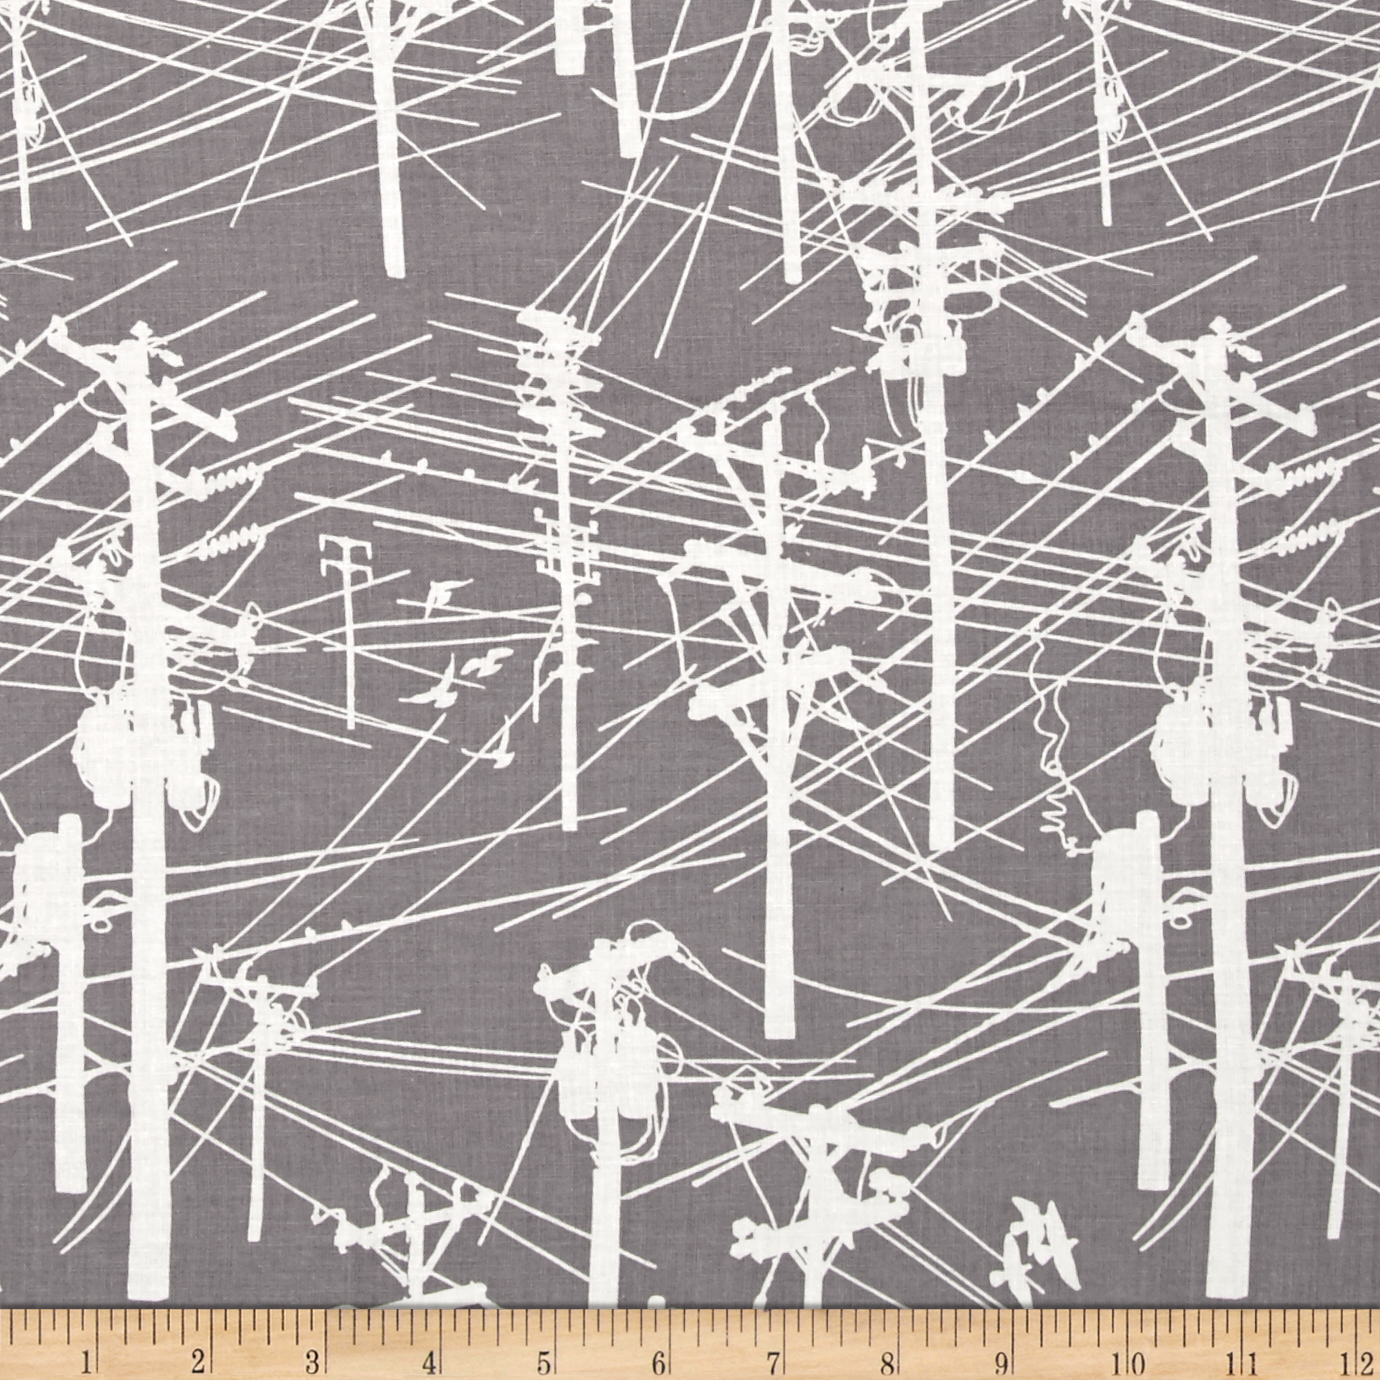 Power Lines In Backyard: SKU-456864 Grafic Power Lines Navy Fabric By The Yard From